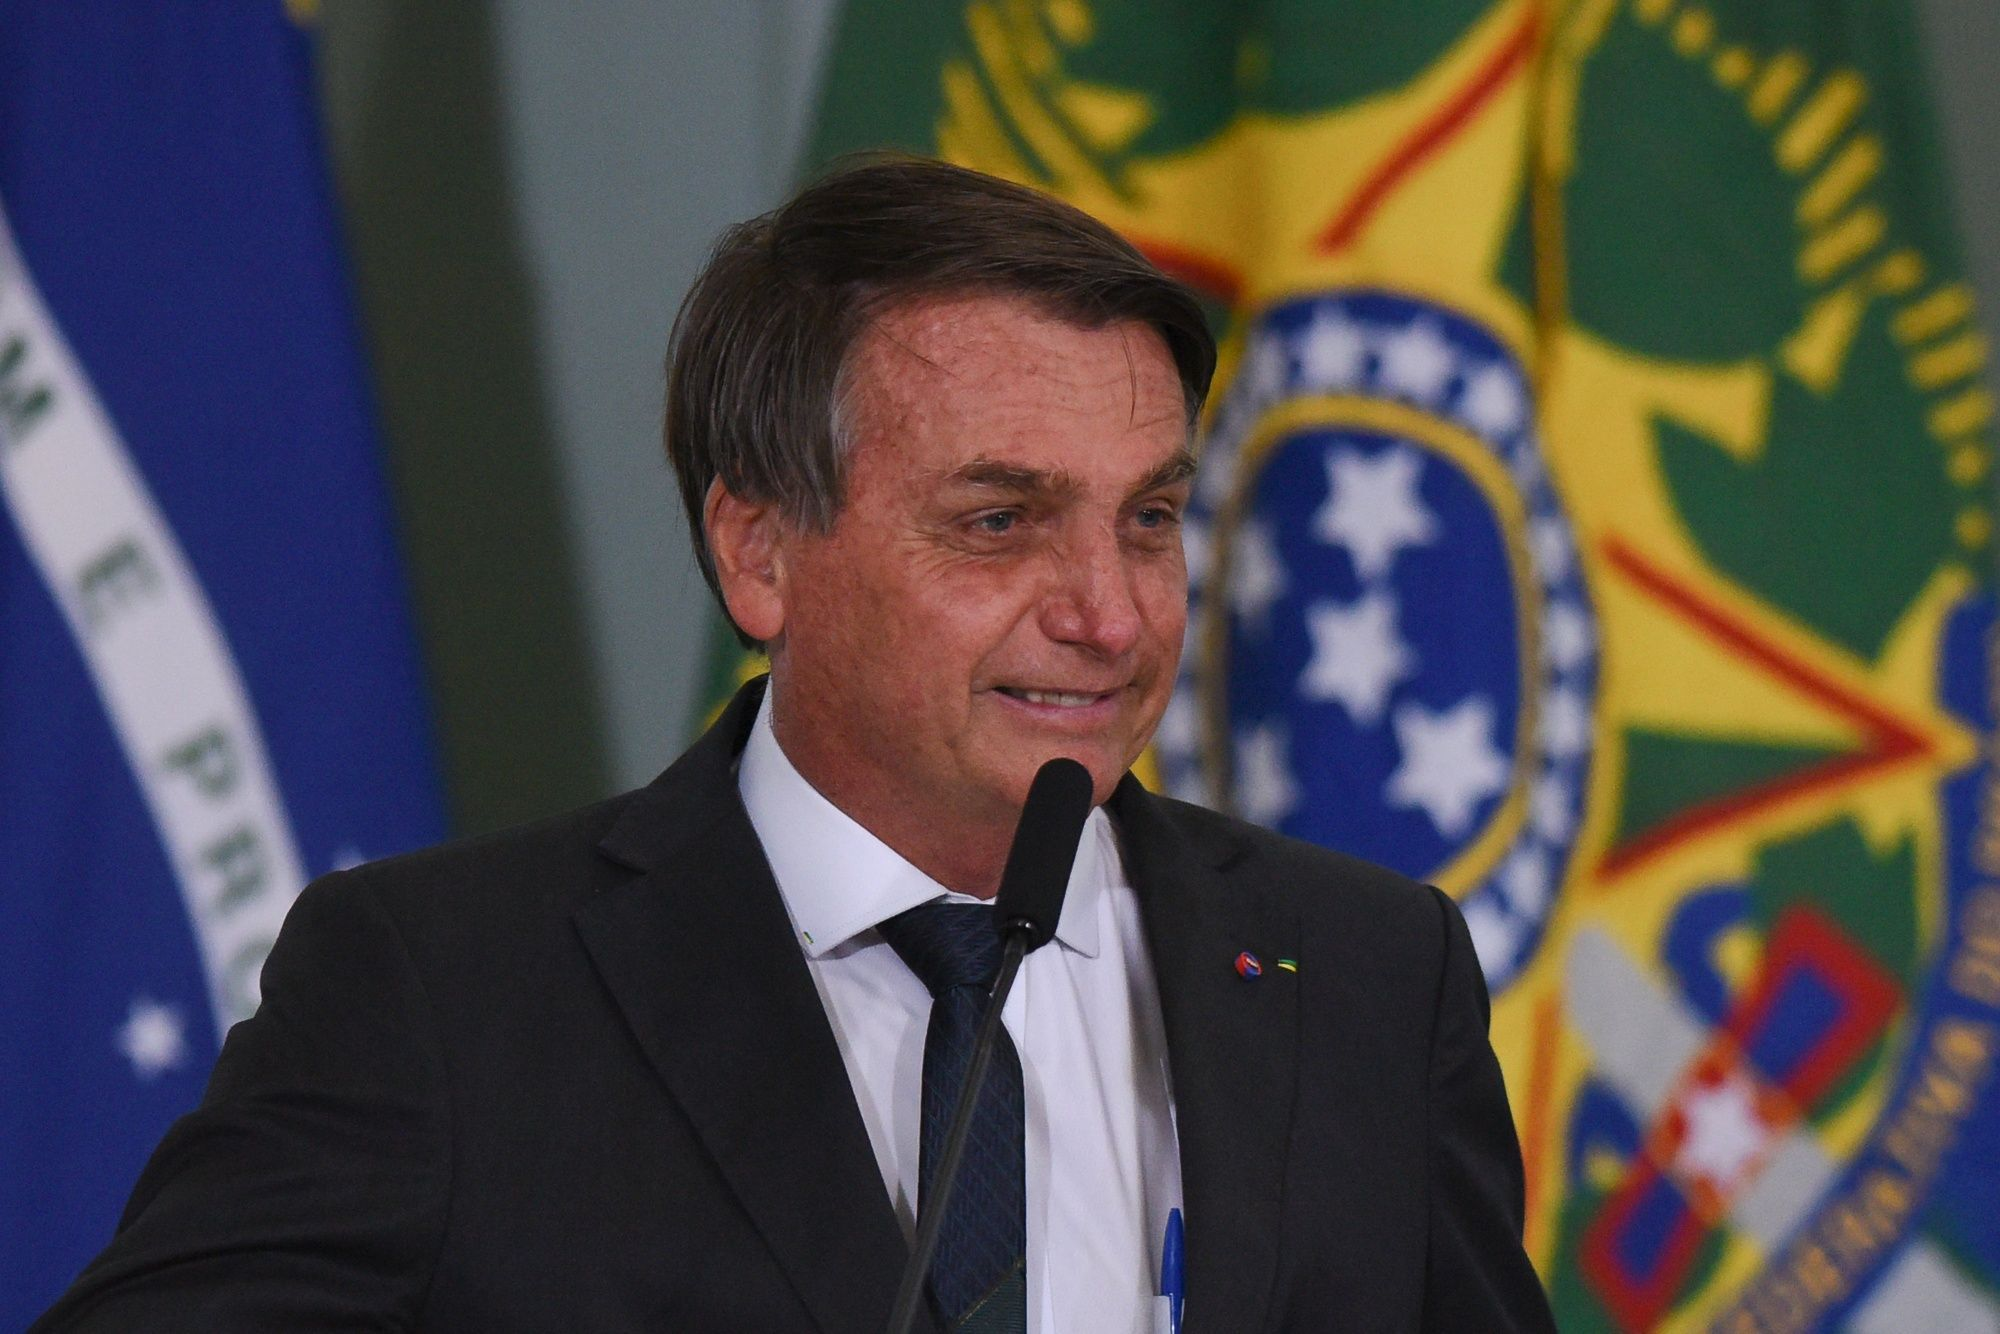 Jair Bolsonaro, Brazil's president, speaks during a ceremony at Planalto Palace in Brasilia, Brazil, on Tuesday, Aug. 25, 2020. Disagreement between Bolsonaro and Economy Minister Paulo Guedes over the size and the shape of a new social program led the government to postpone the announcement of its post-pandemic economic plan, leaving the government to announce only a new housing initiative instead.